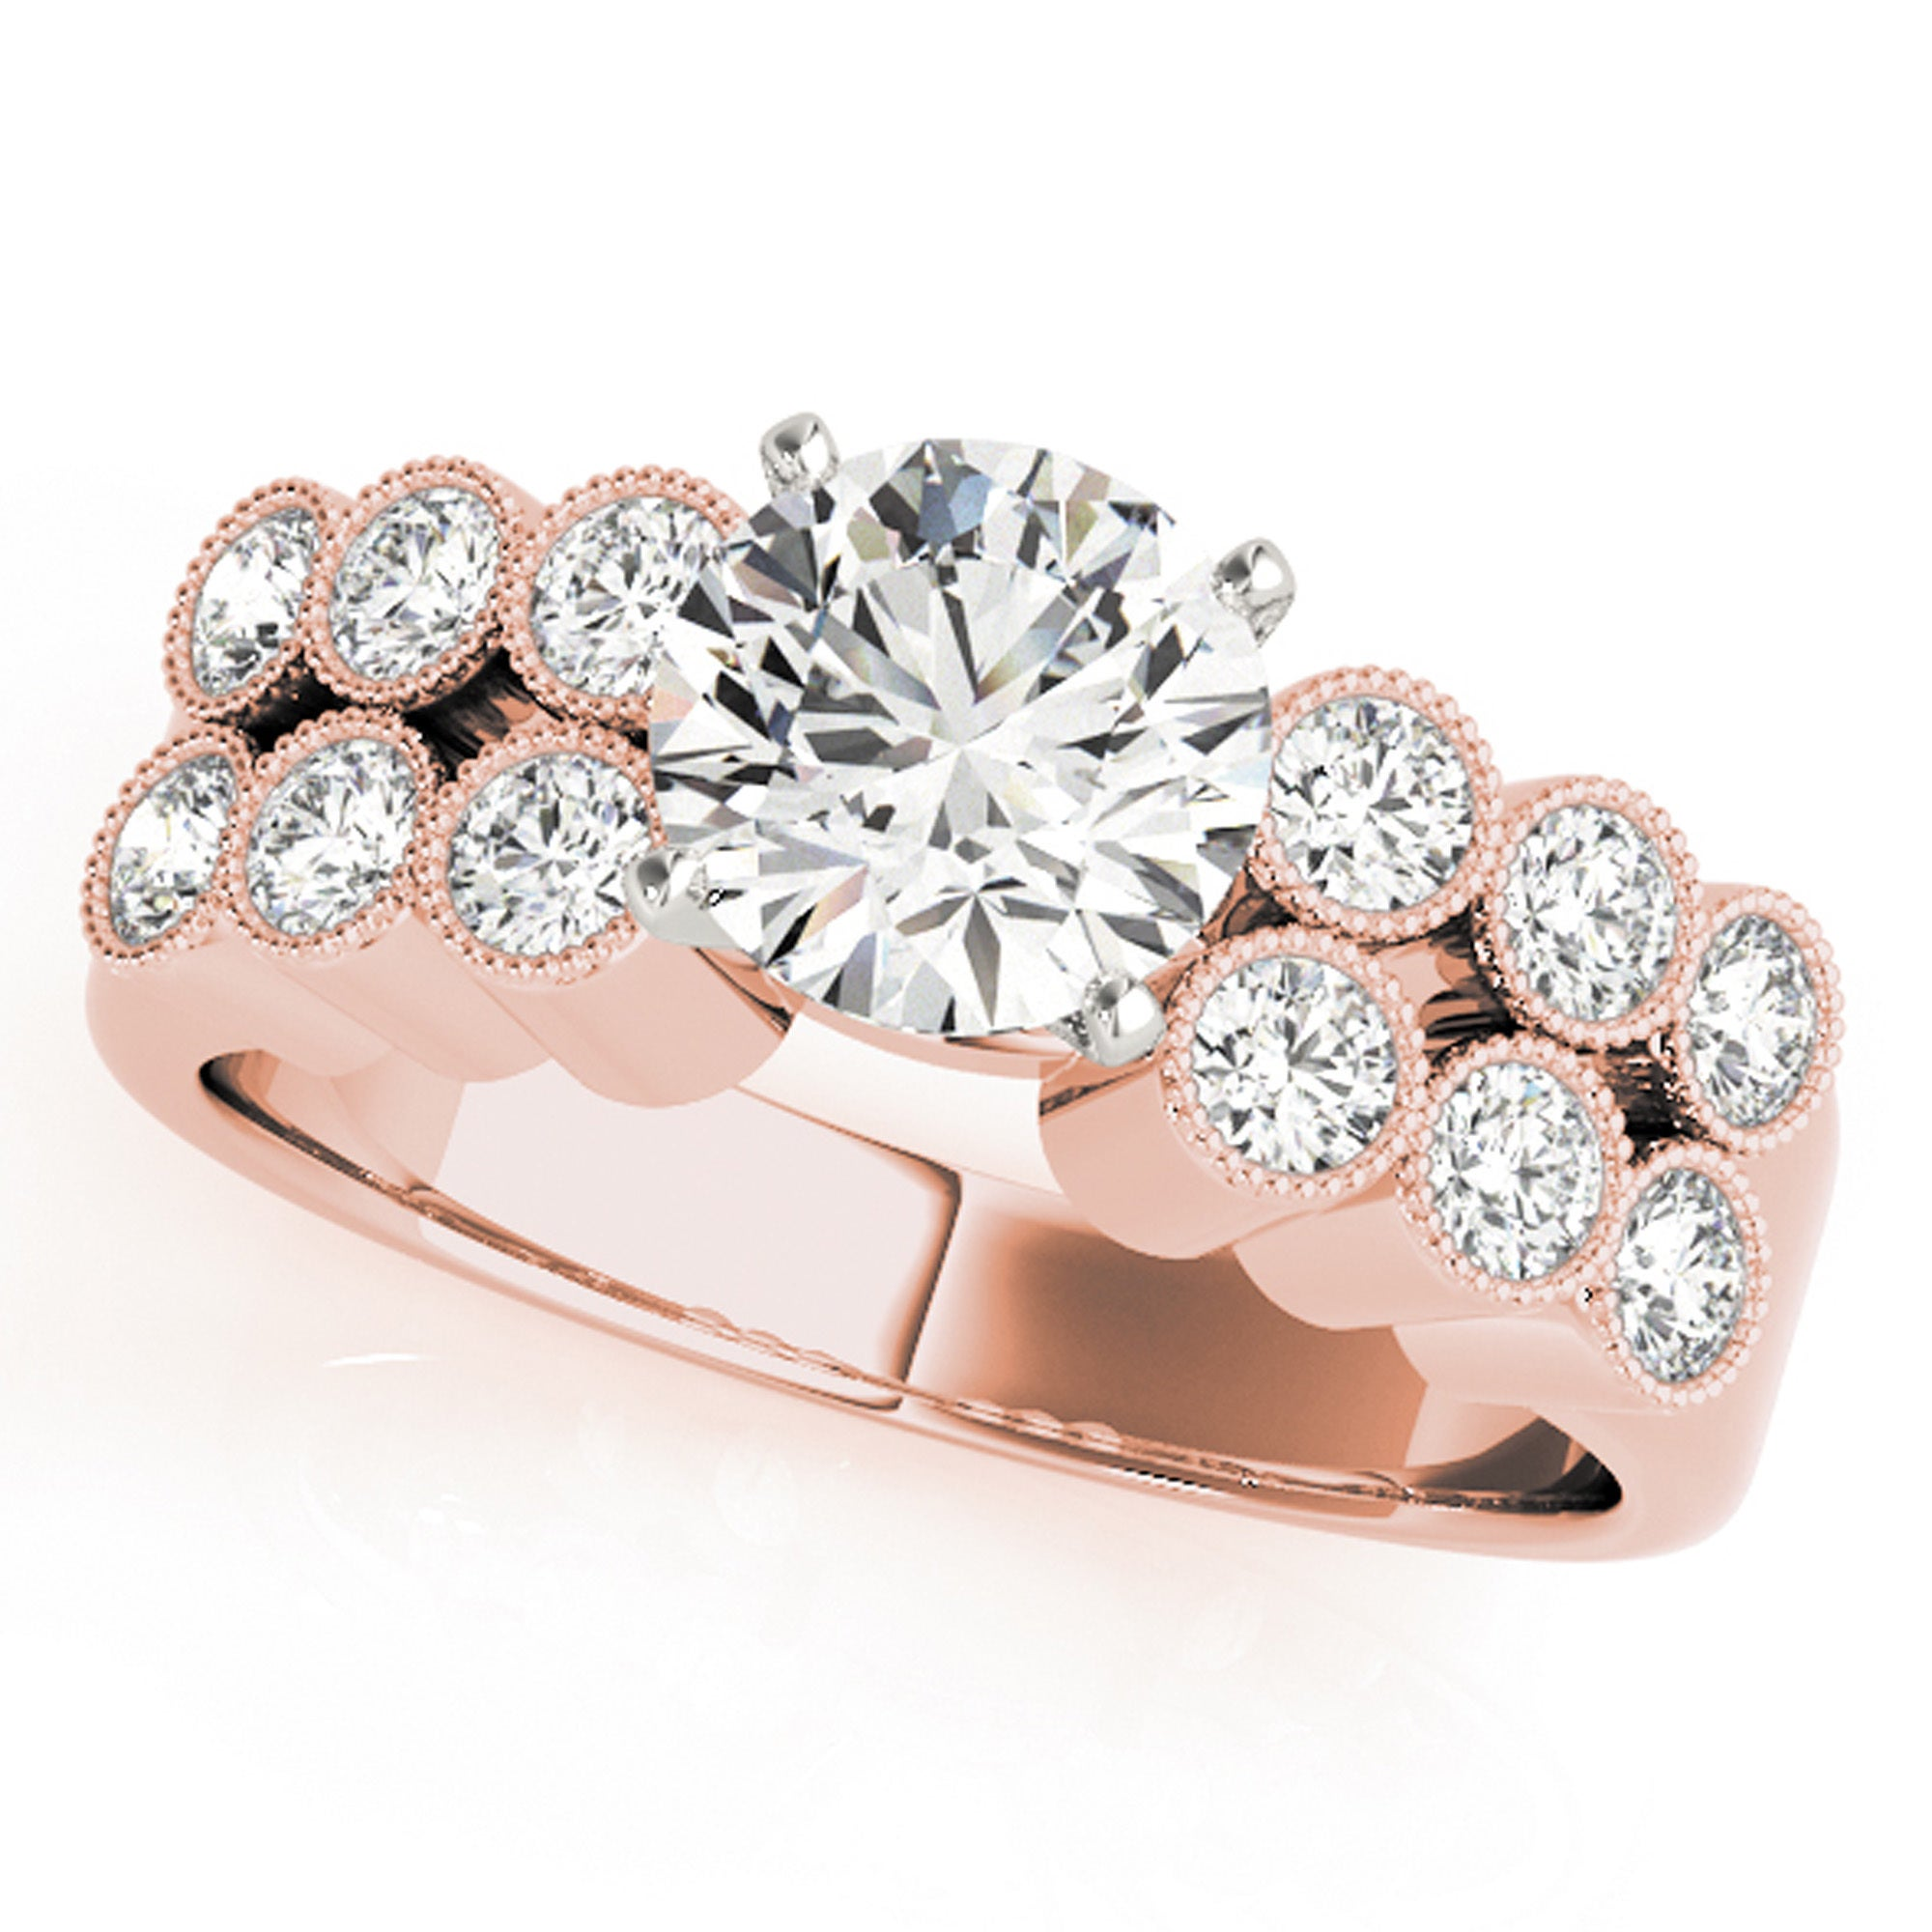 3 Diamond Promise Ring in 14K Pink Gold 1//10 cttw, Size-4.25 G-H,I2-I3